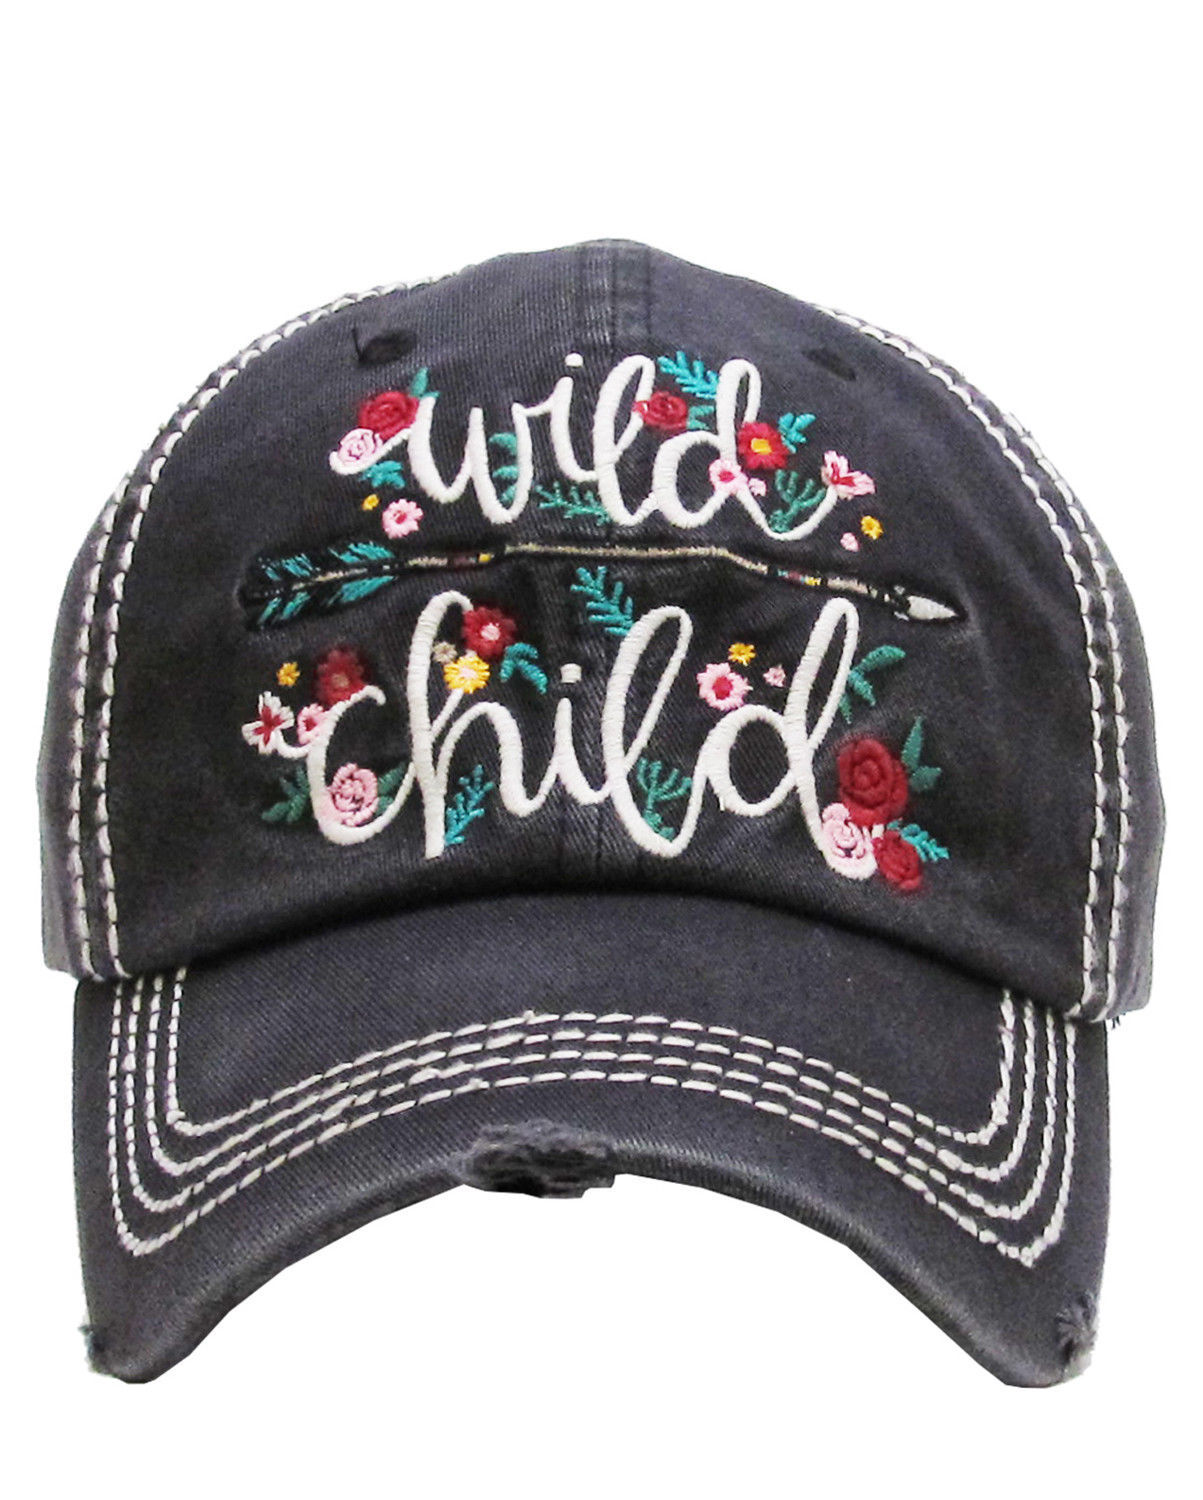 Distressed Embroidered Wild Child Flower Baseball Hat Vintage Style